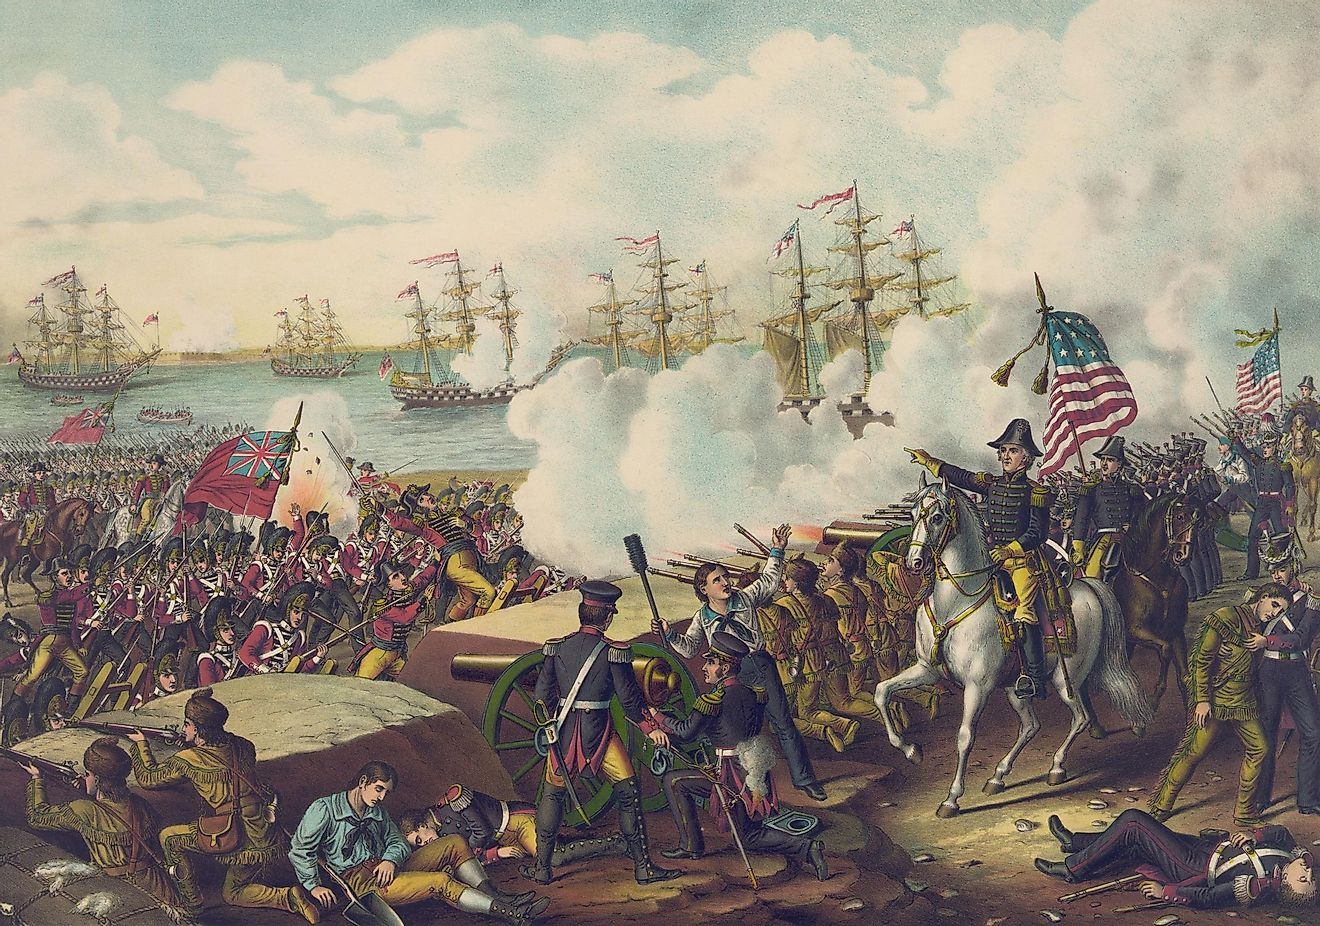 The War of 1812 happened when the two opposing sides, the United States on one, and the United Kingdom on the other, could no longer agree about their views on US independence. Image credit: Everett Historical / Shutterstock.com